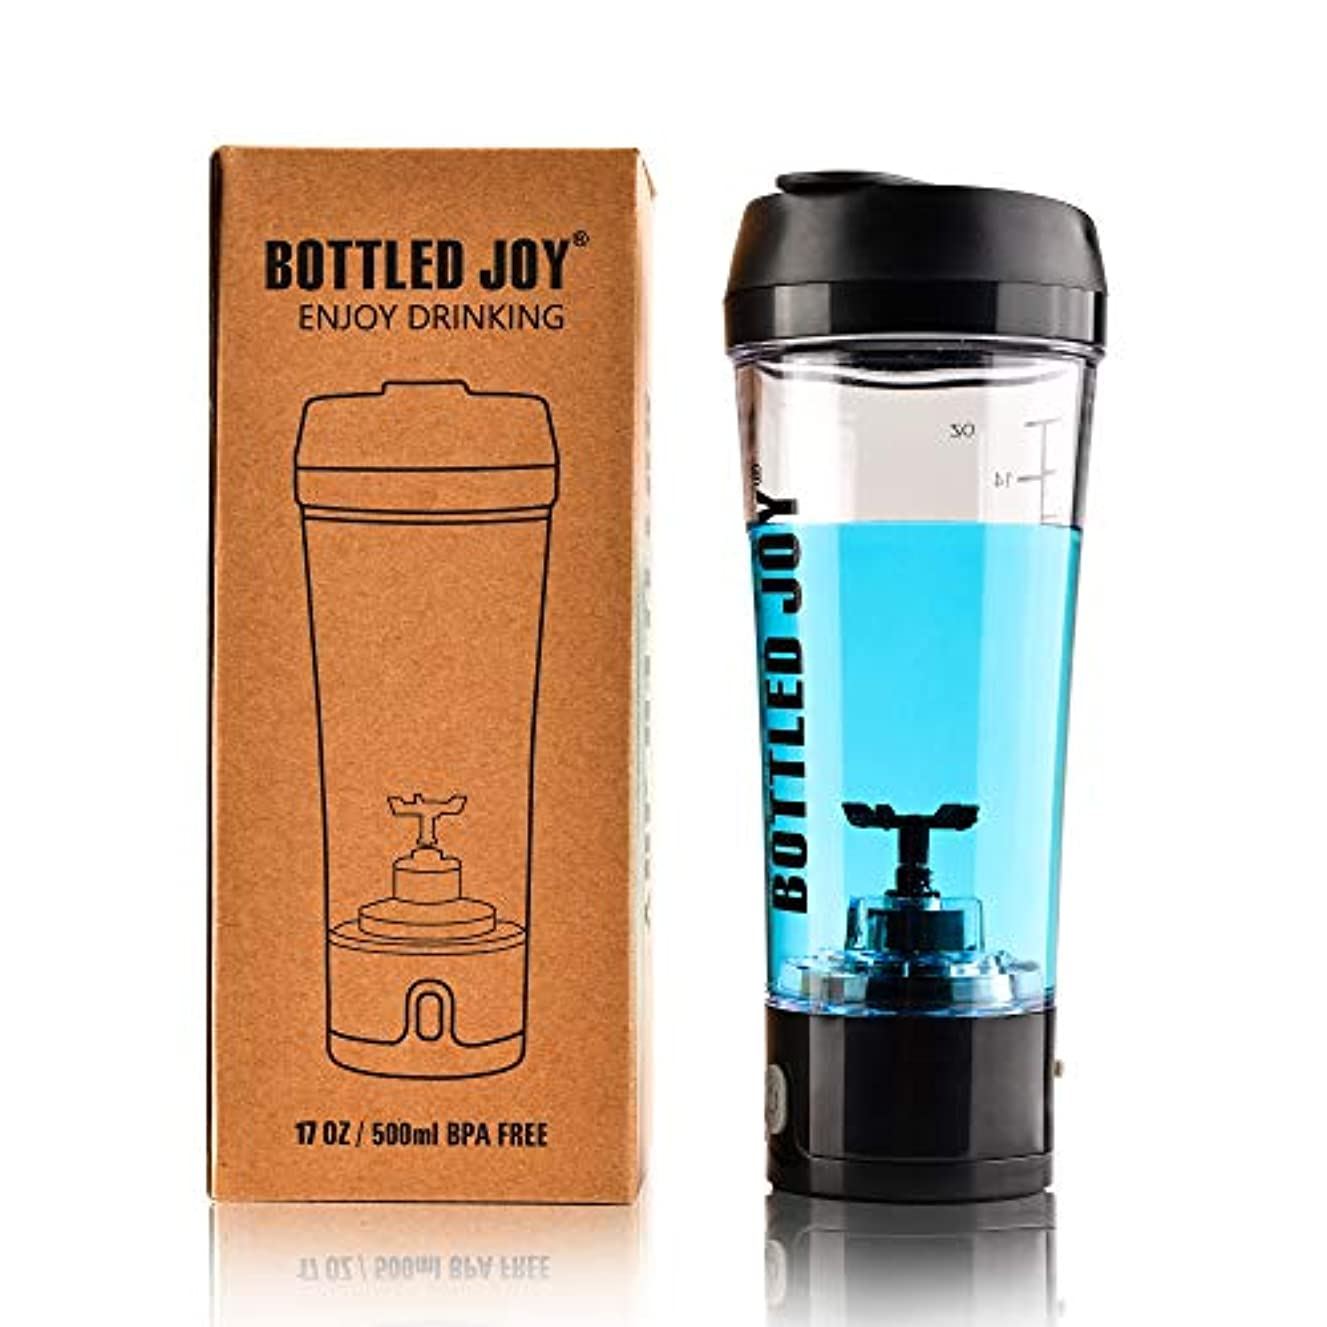 現実には明らかにするジャニスBottled Joy Electric Shaker Bottle、USB Rechargeable Protein Shaker、high-torque Stirring Blenderミキサーのスポーツマンと女性16oz...